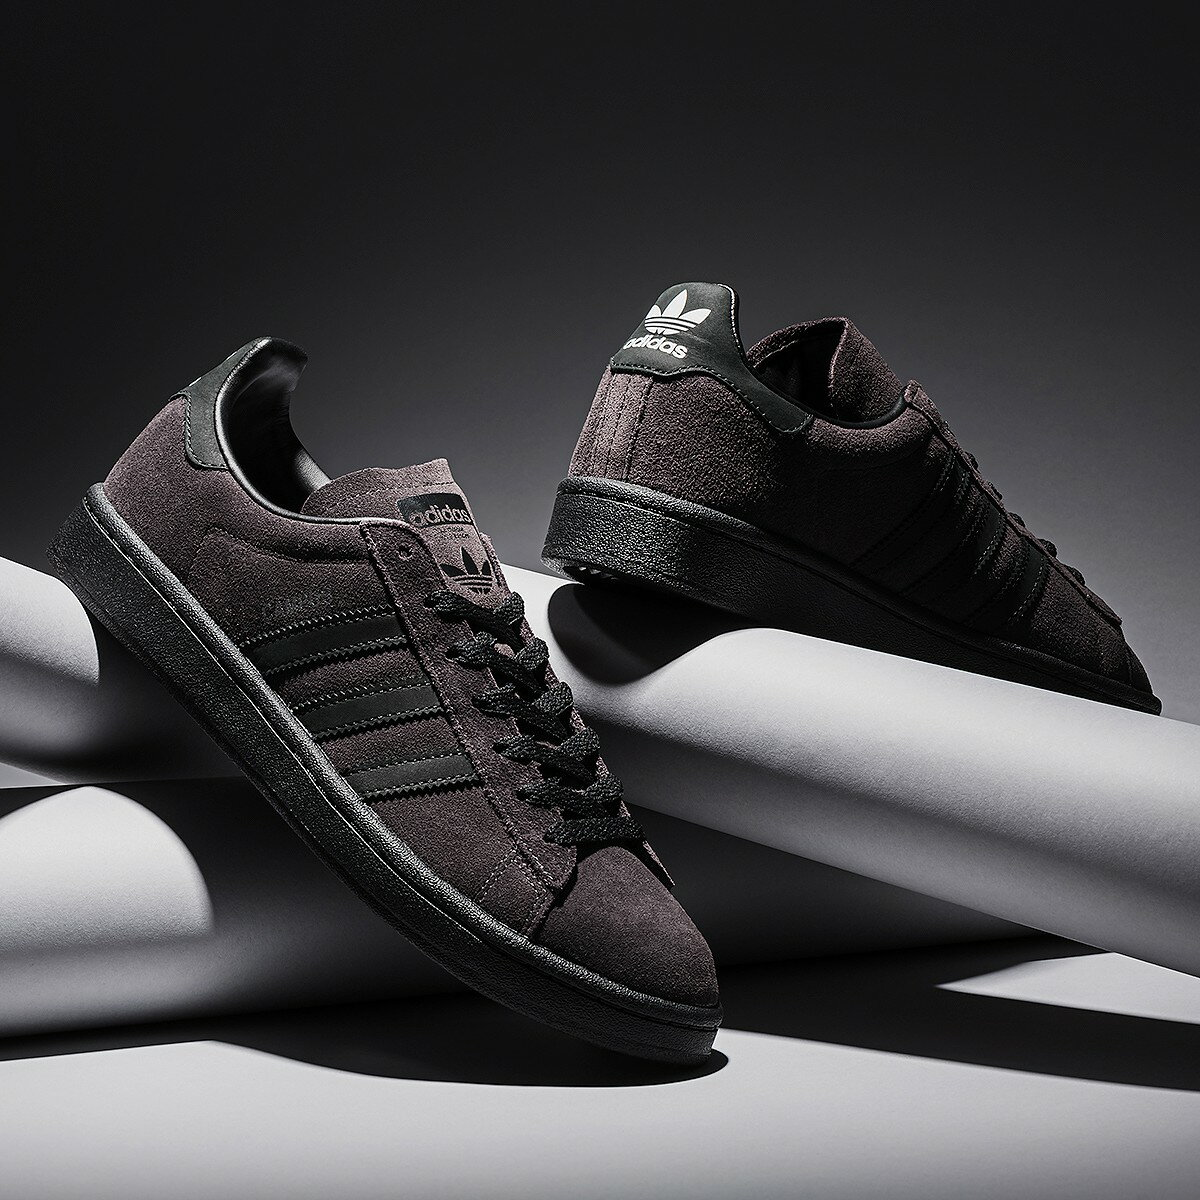 メンズ靴, スニーカー adidas Originals CAMPUS KICKS LAB. KICKS LAB. EXCLUSIVE MAROONCORE BLACKCORE BLACK fz5577